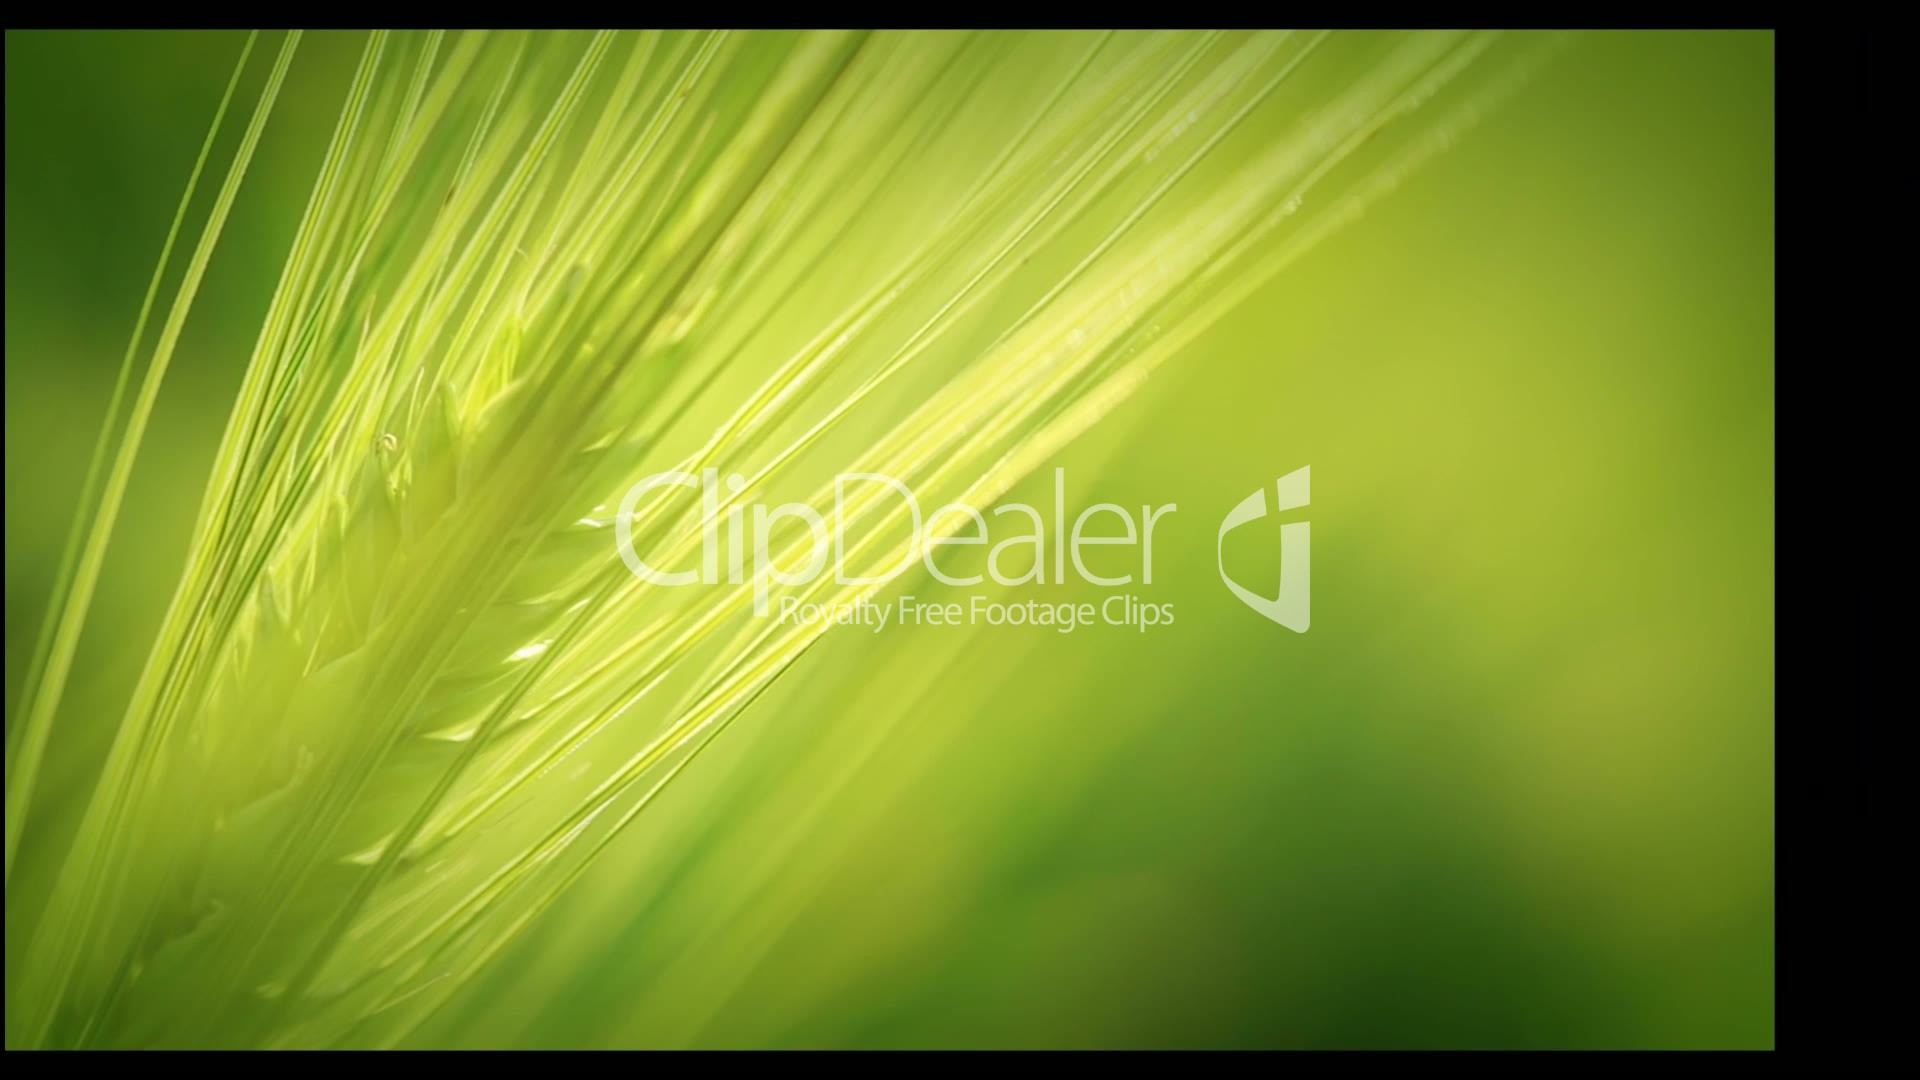 Hd Christbaumschmuck Royalty Free Video And Stock Footage Agriculture Cereal Crops Harvesting Hd Montage Royalty